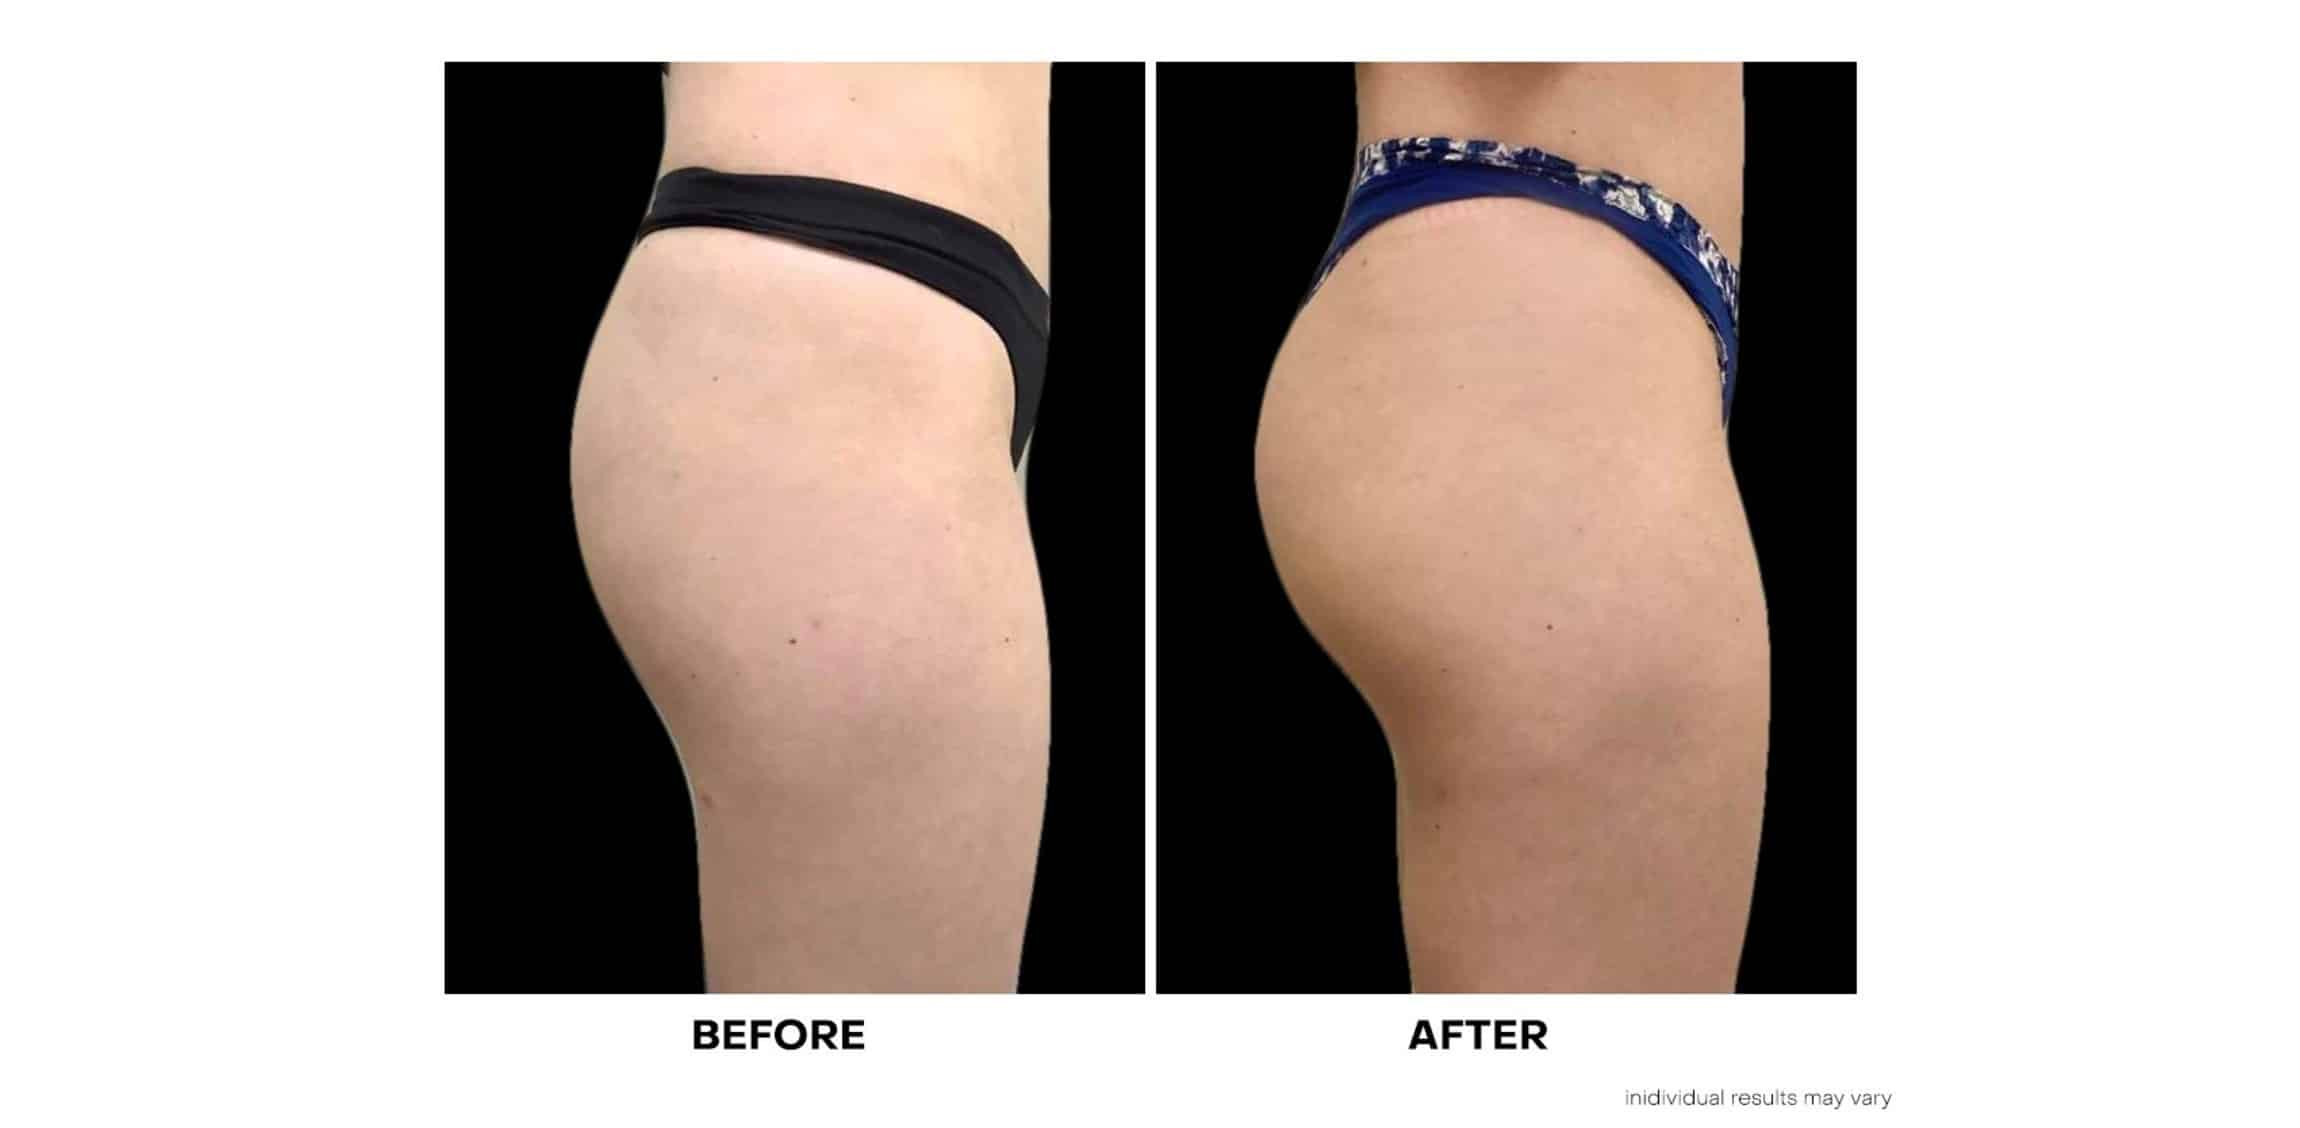 Before and After Sculptra Nonsurgical Butt Lift and Augmentation